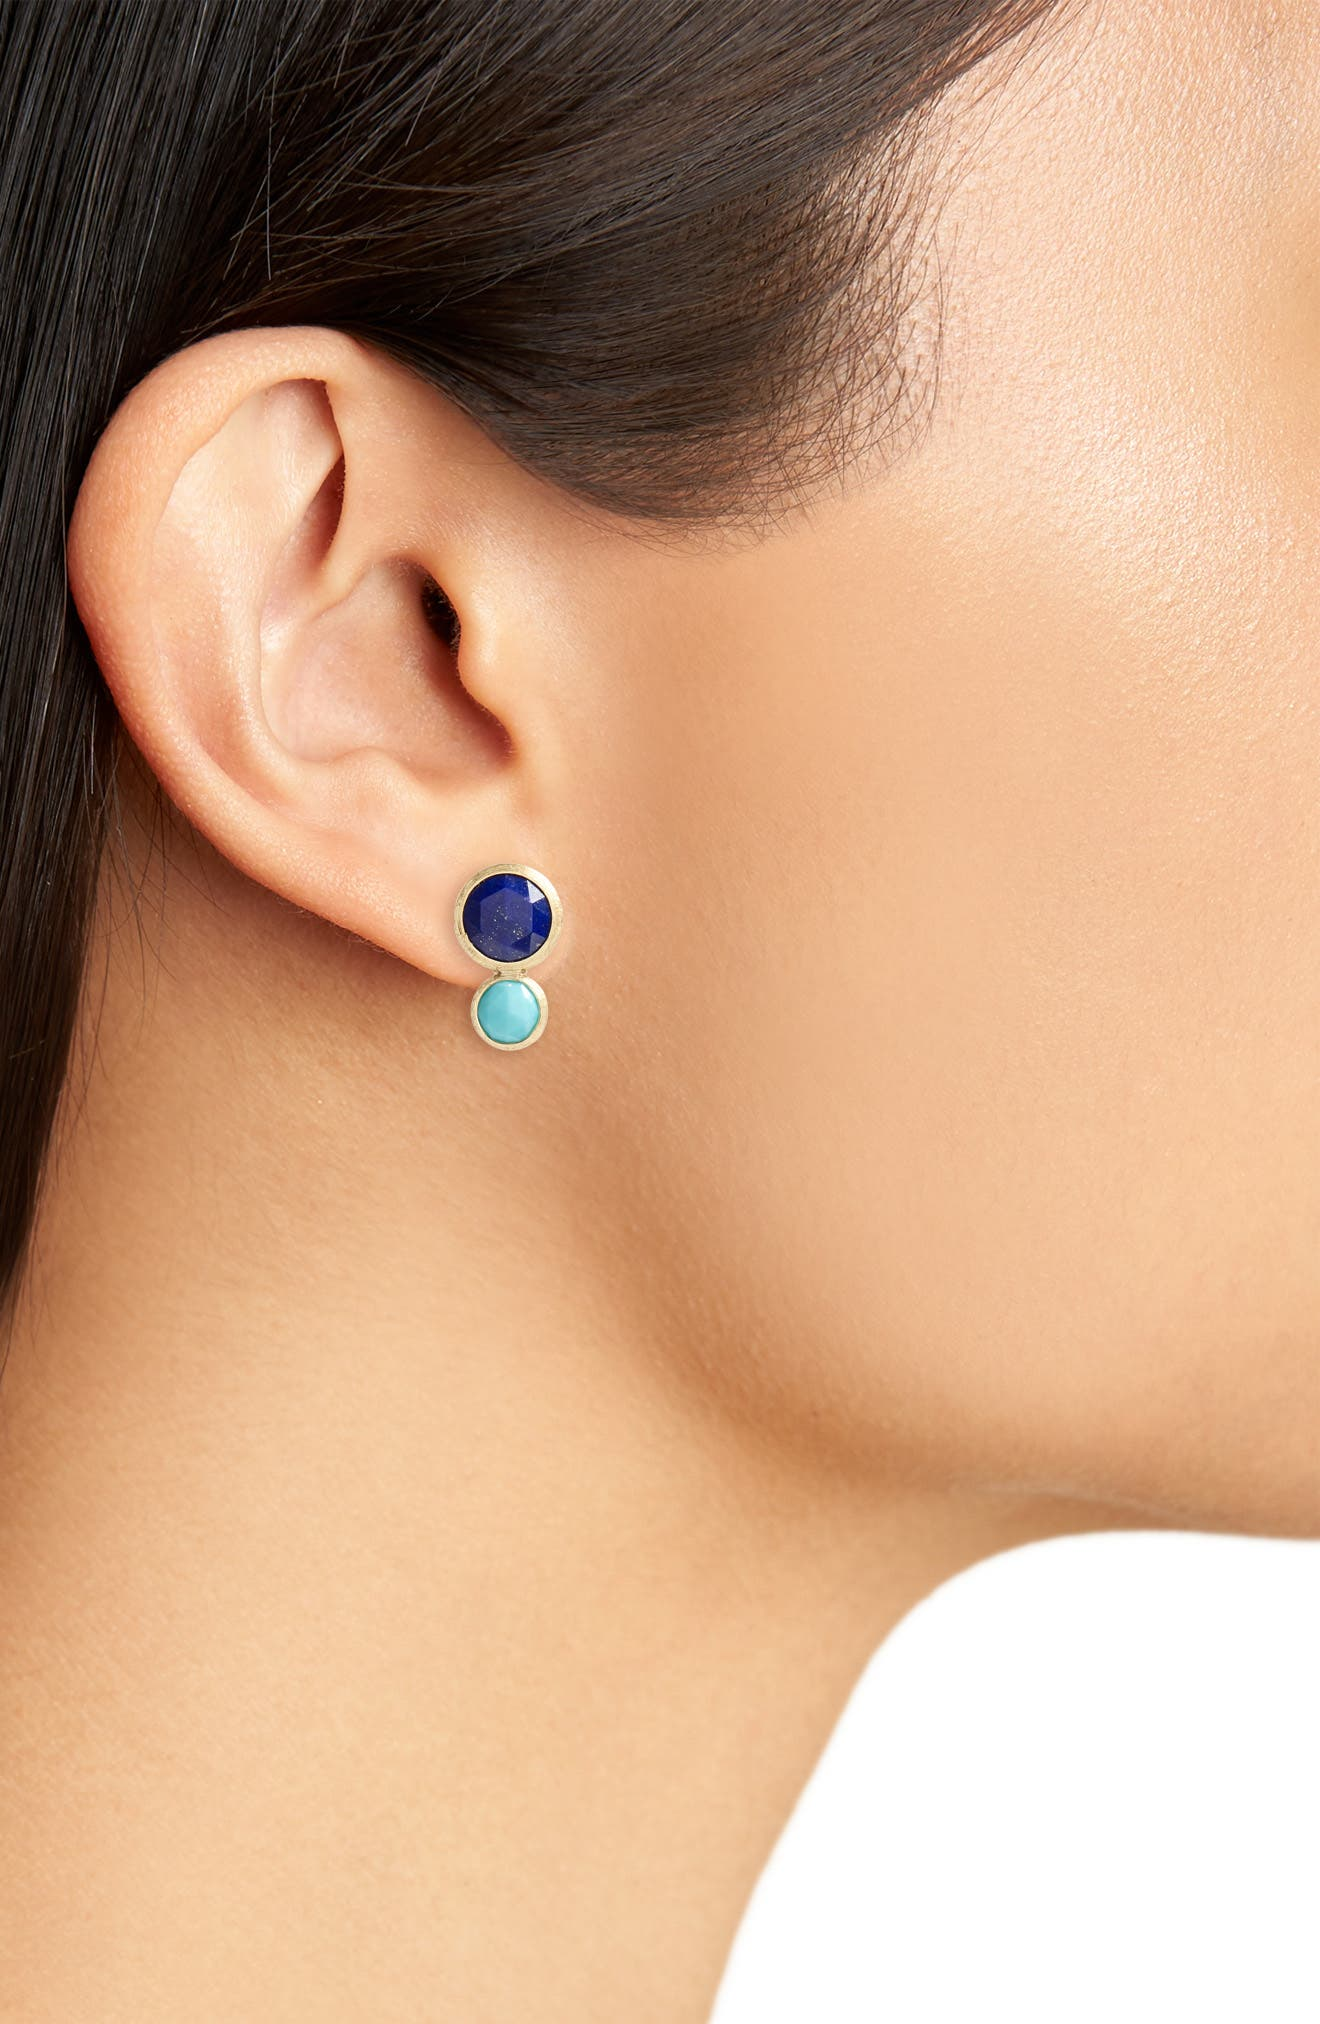 Jaipur Lapis & Turquoise Stud Earrings,                             Alternate thumbnail 2, color,                             YELLOW GOLD LAPIS/ TURQUOISE